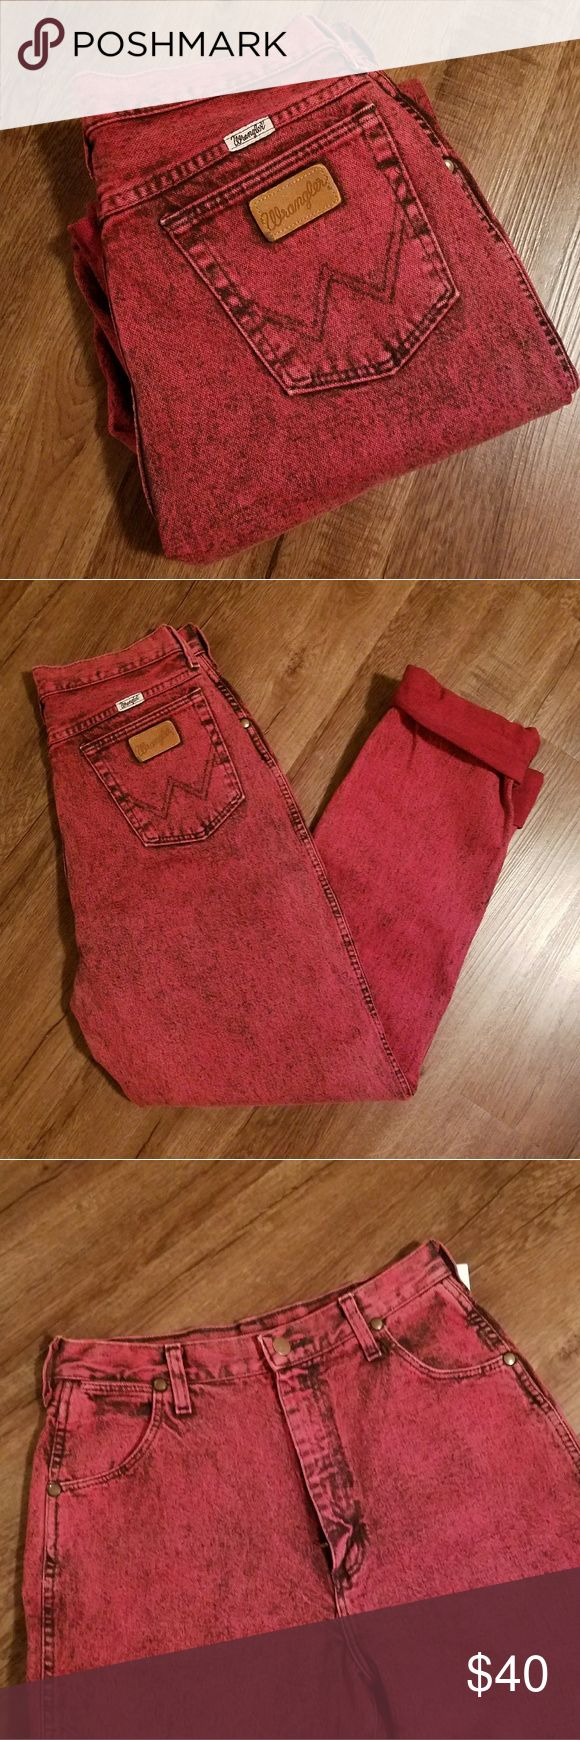 Vtg Wrangler High Waisted Mom Jeans Vintage High Waisted Mom Jeans Color Red  Amazing condition  28×34 I had them rolled twice to make the inseam 30. You could make them any length. Wrangler Pants Straight Leg